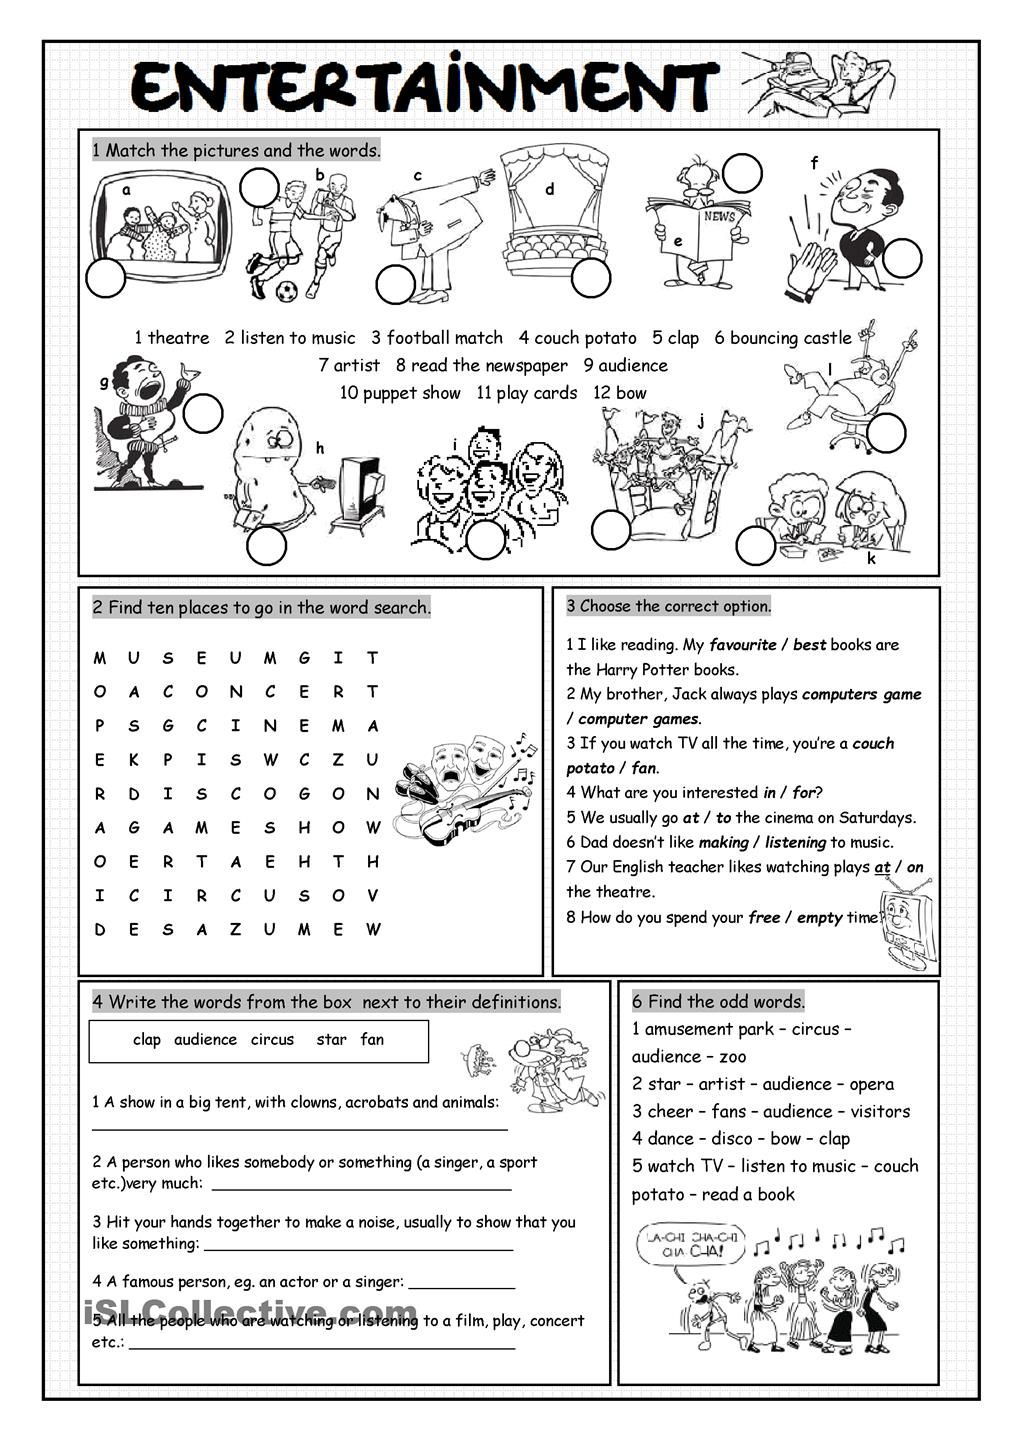 worksheet Vocabulary Builder Worksheets kids pages illnesses matching bw vocabulary pinterest kid the third part of entertainment set with five exercises wordsearch worksheet on practisingreinforcing enterta